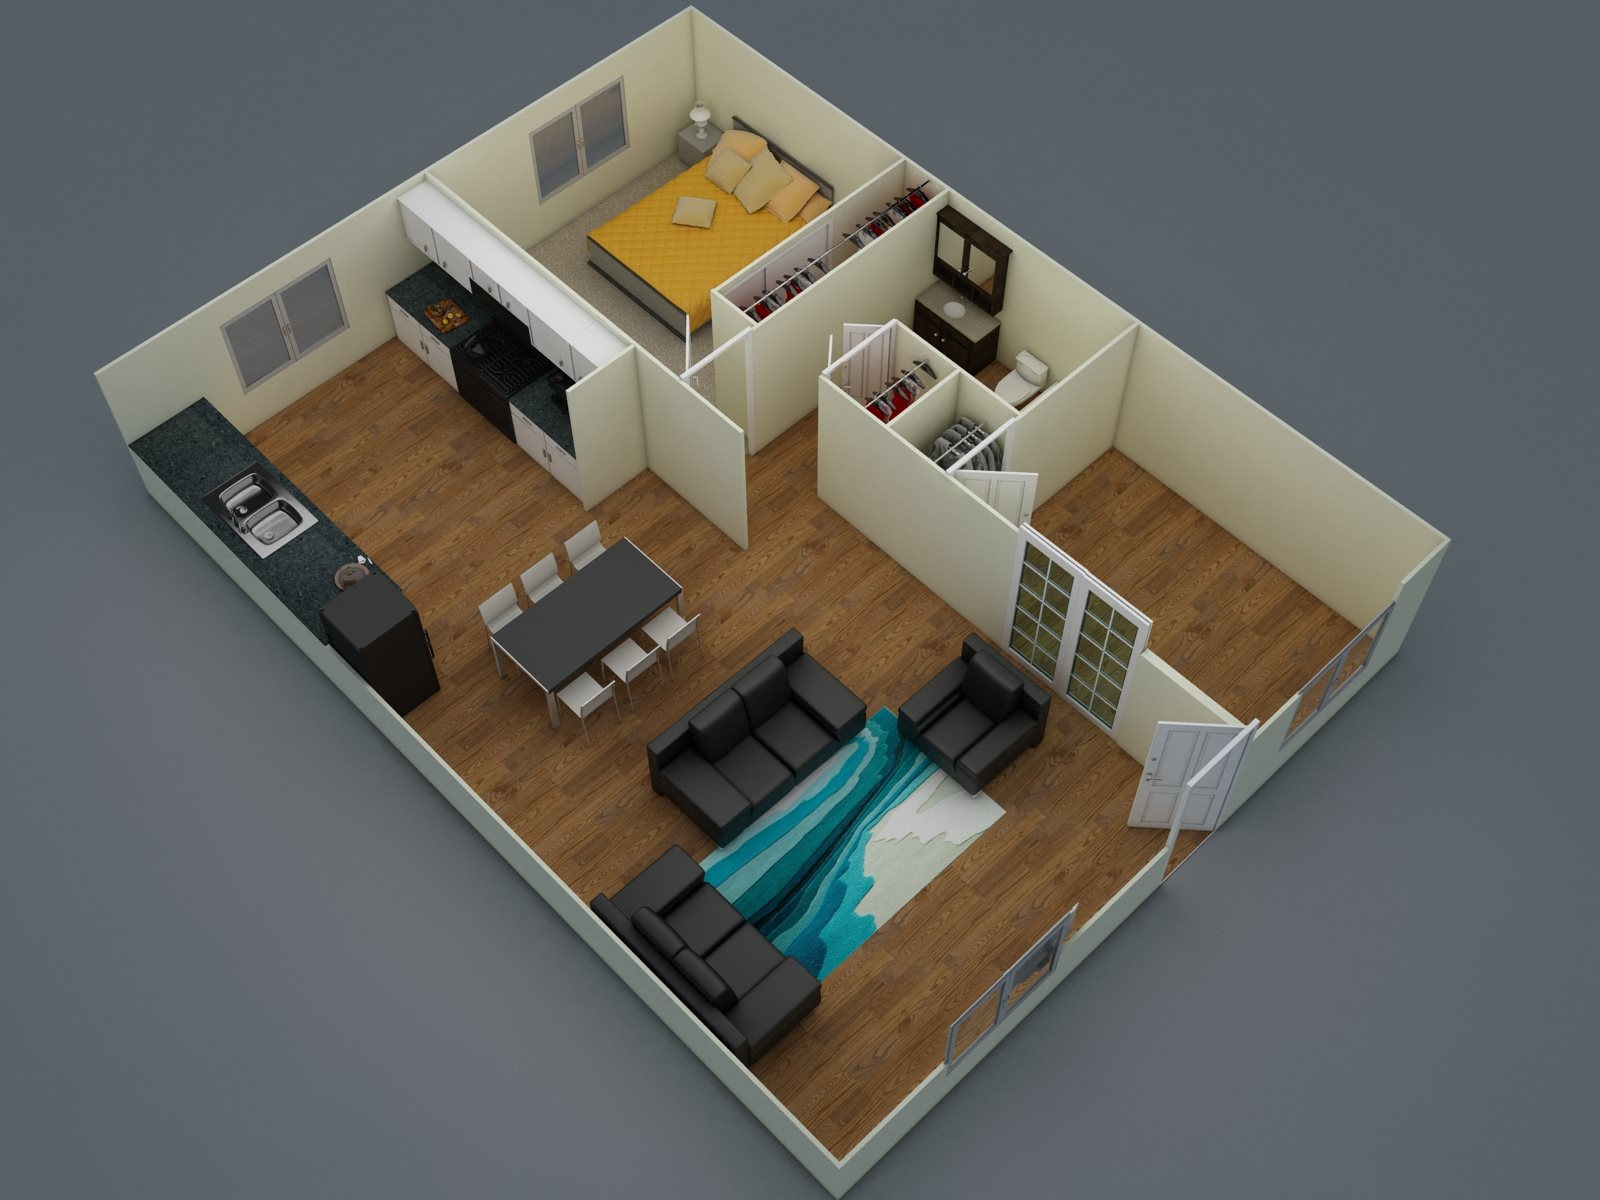 Two Bedroom - One Bath - D1 Floor Plan 2